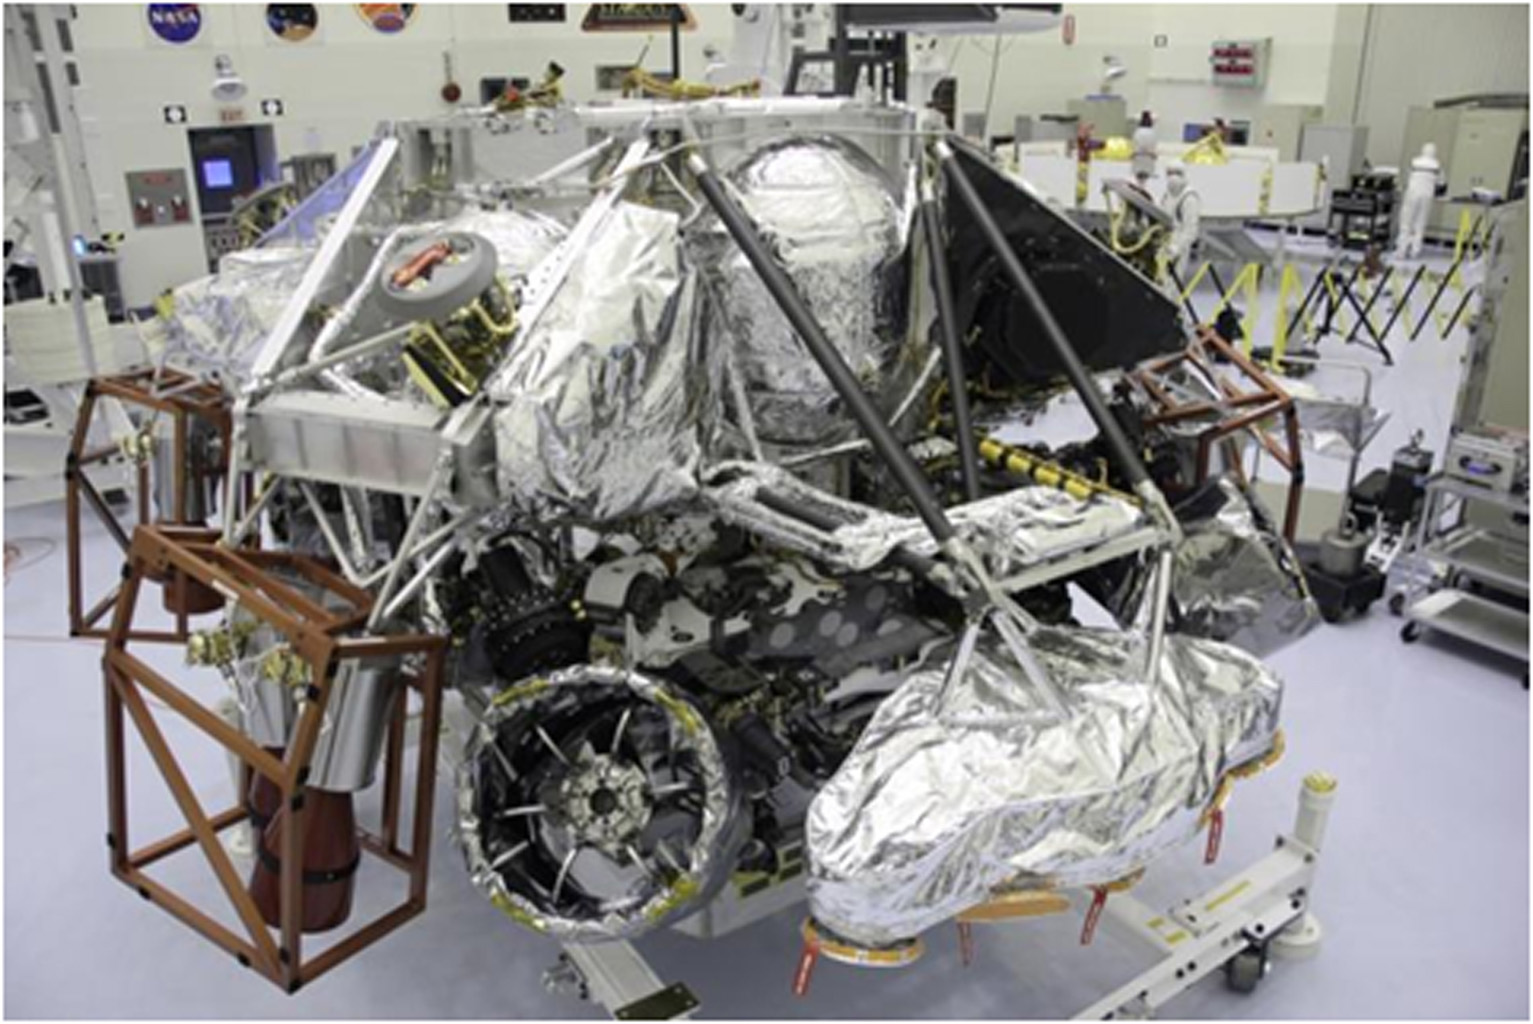 The Mars Science Laboratory mission's 'powered descent vehicle' is the integrated combination of the spacecraft's descent stage and the rover Curiosity.